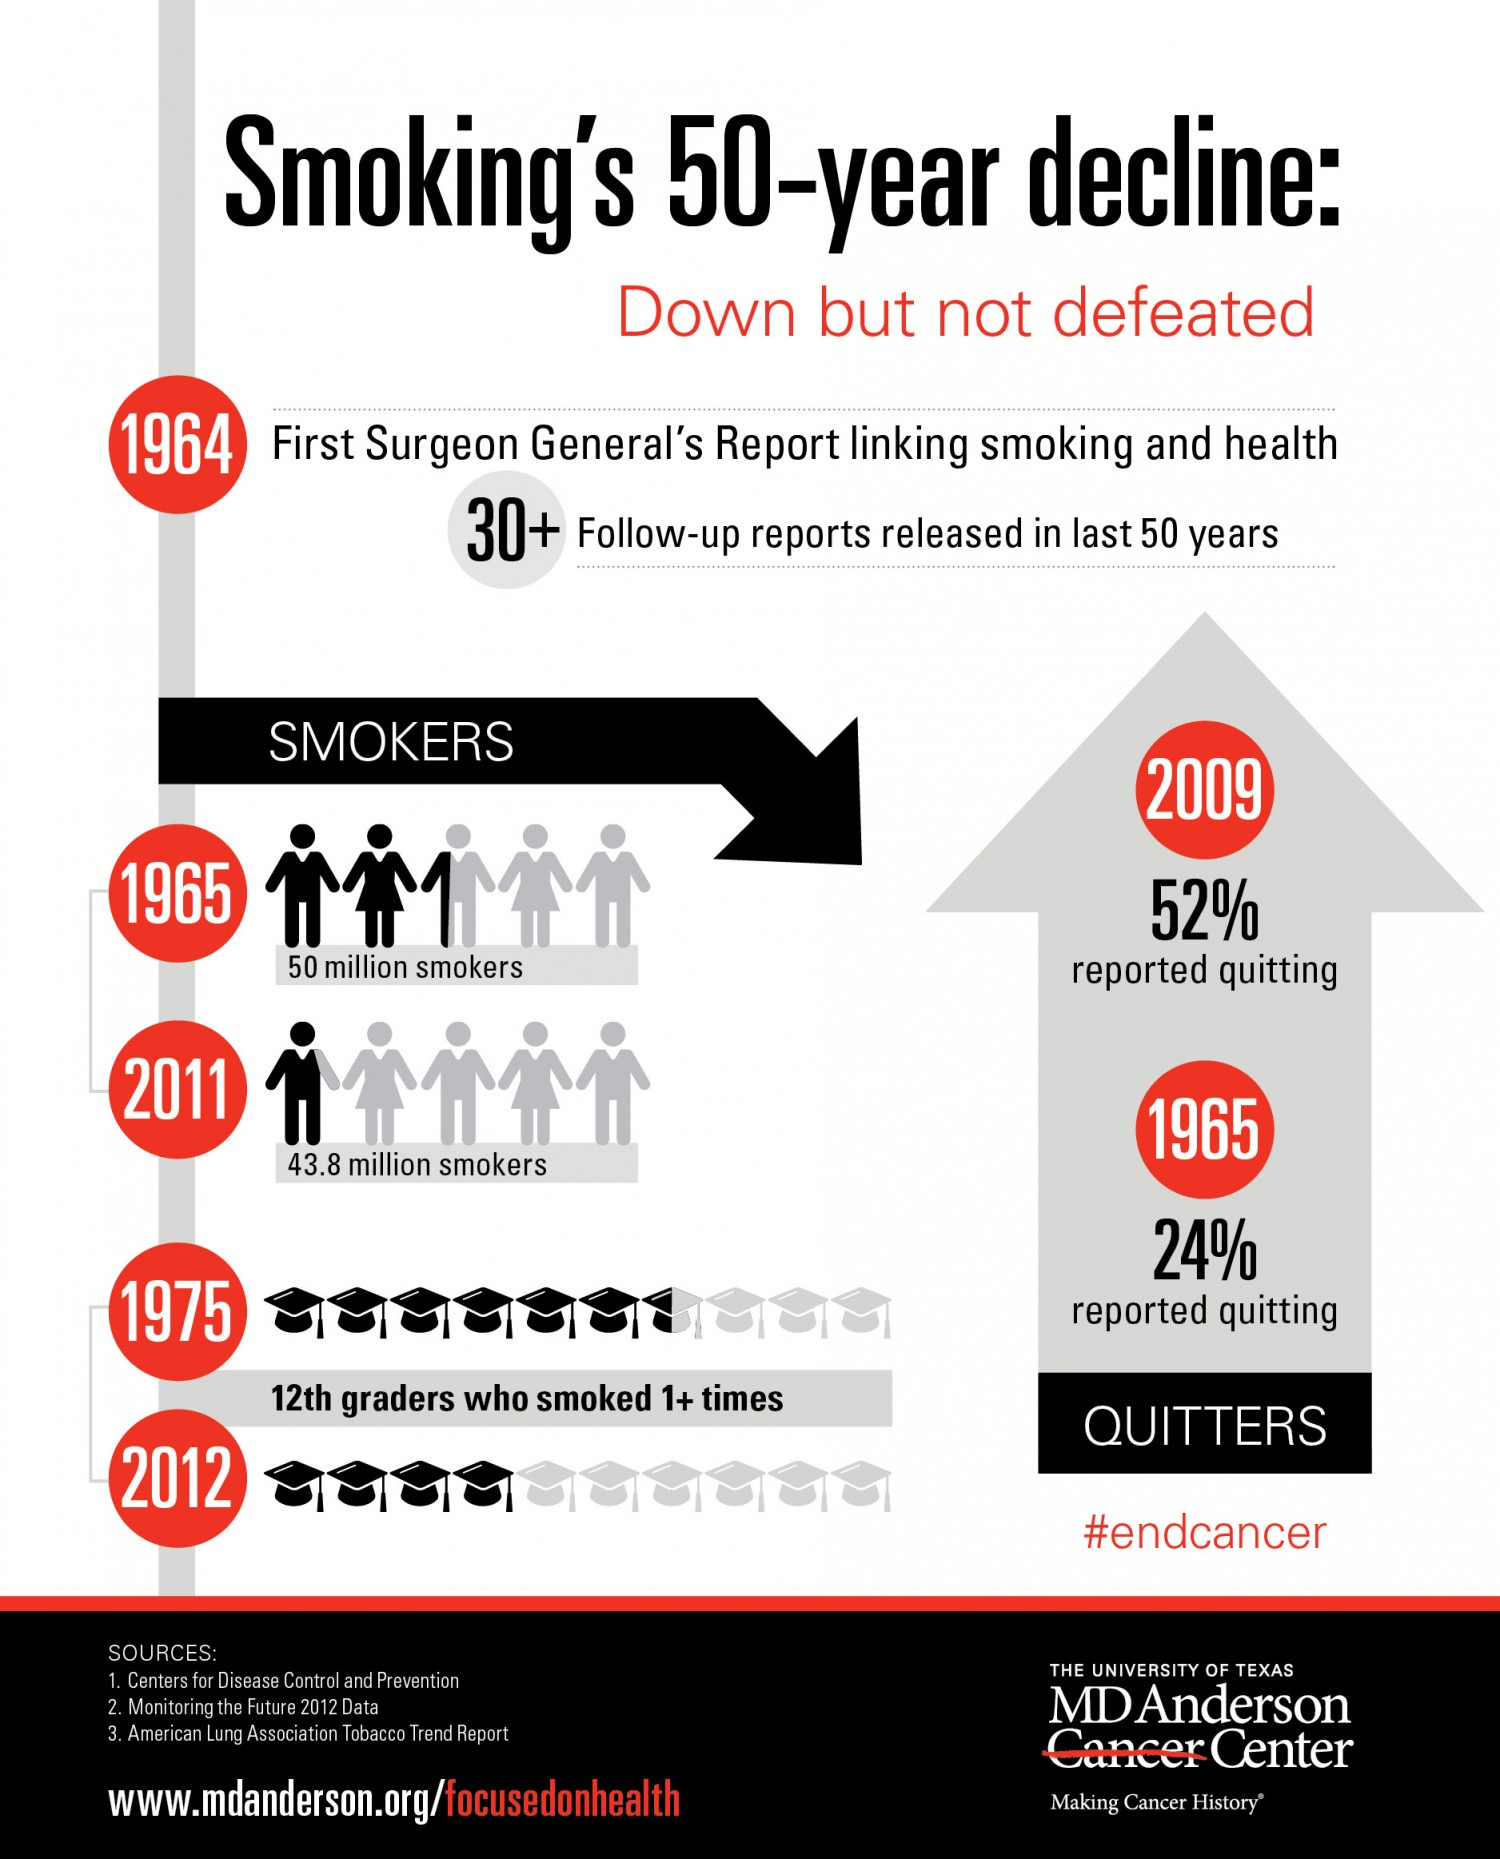 17. Smoking's 50-year Decline